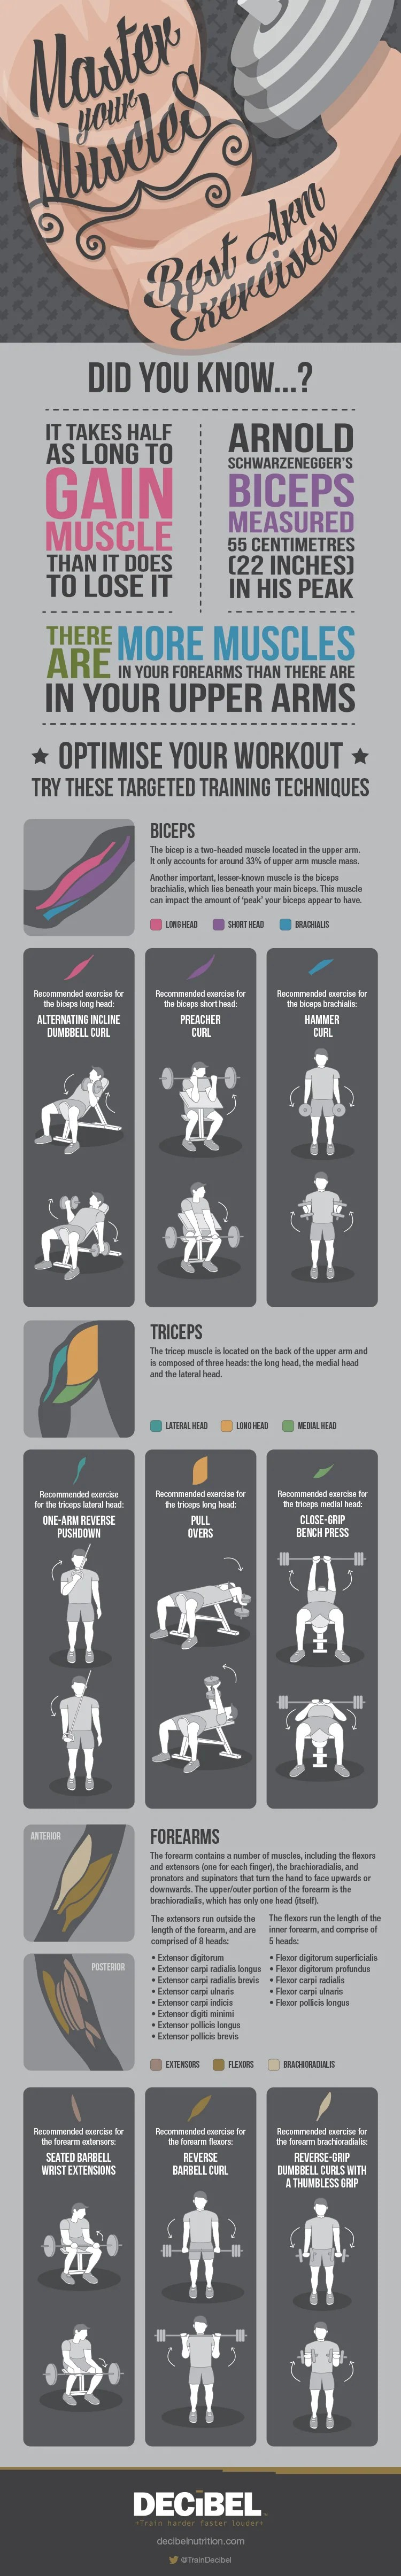 Master Your Muscles: Best Arm Exercises Infographic